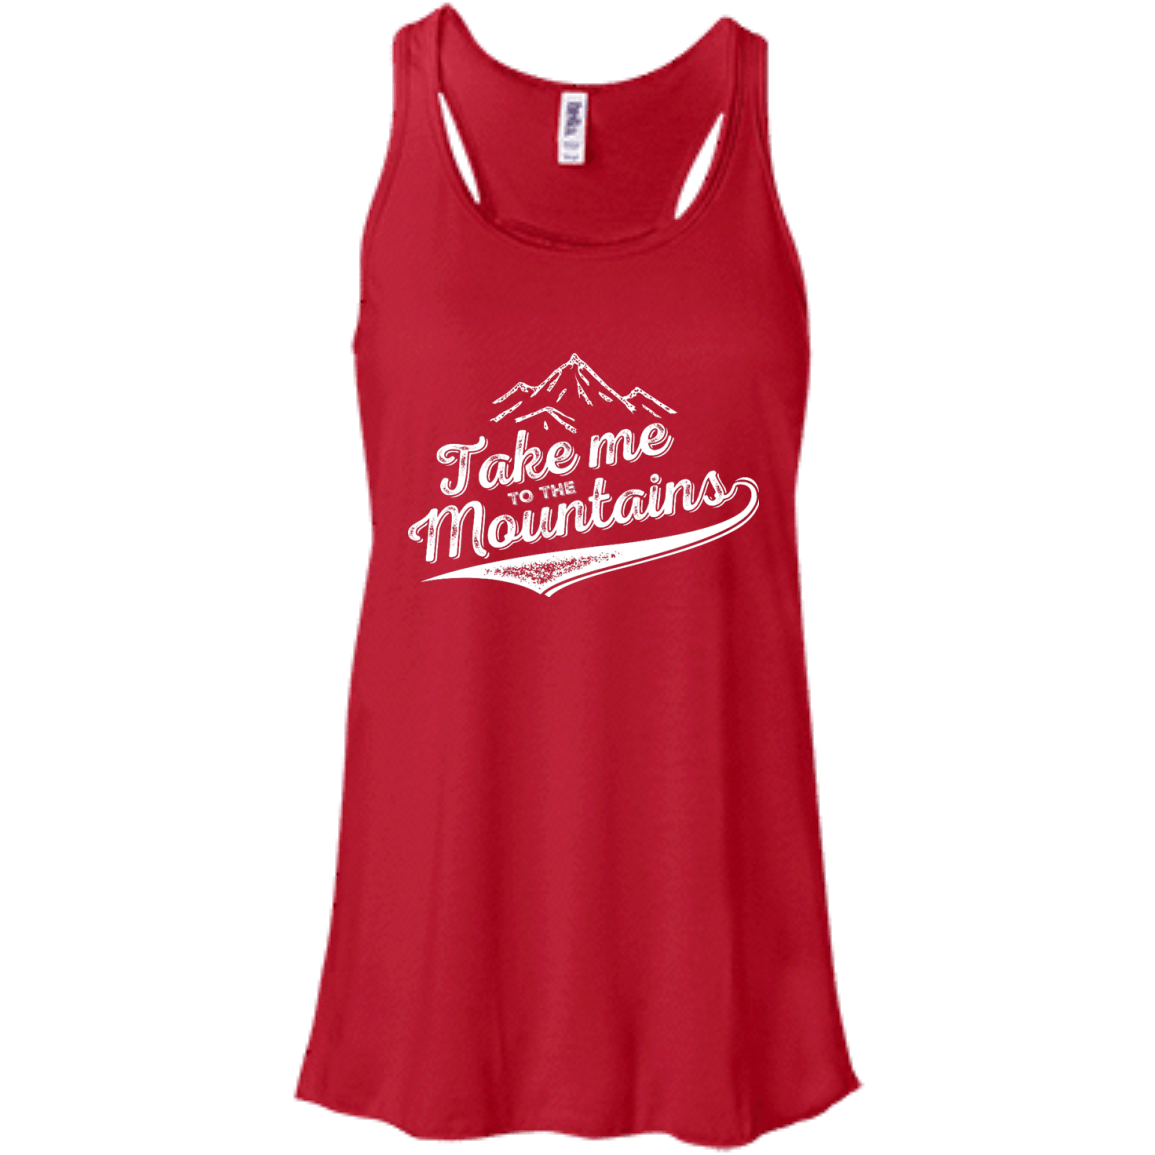 Take Me To The Mountains Tank Tops - Powderaddicts